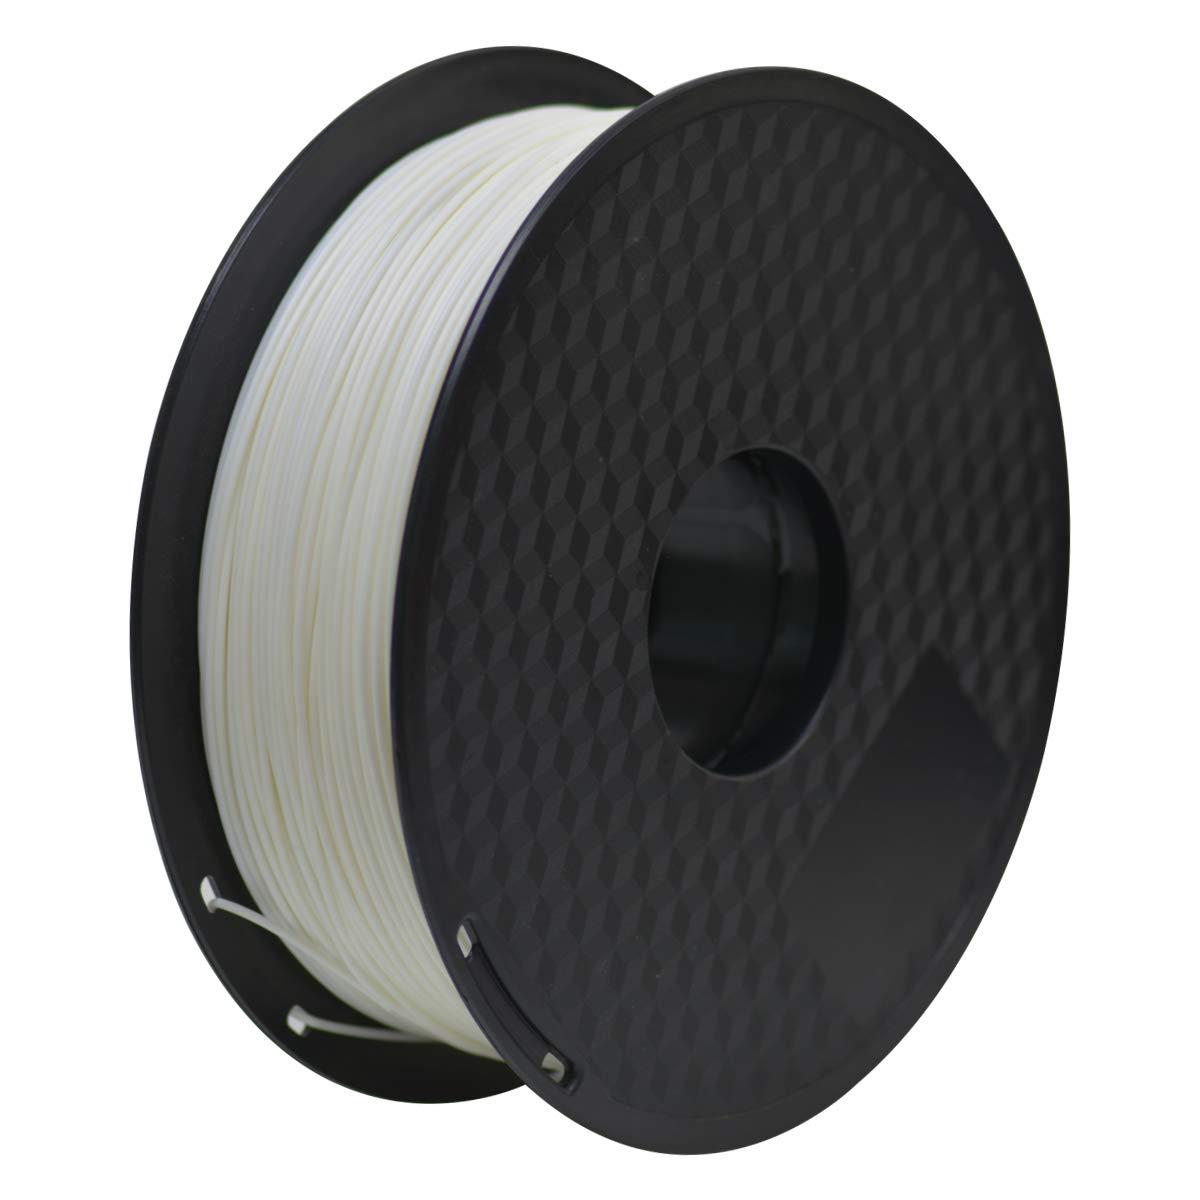 White Geeetech ABS Filament 1.75 mm 3D Filament High Quality Reliable 3D Printing Filament for 3D Printer Color